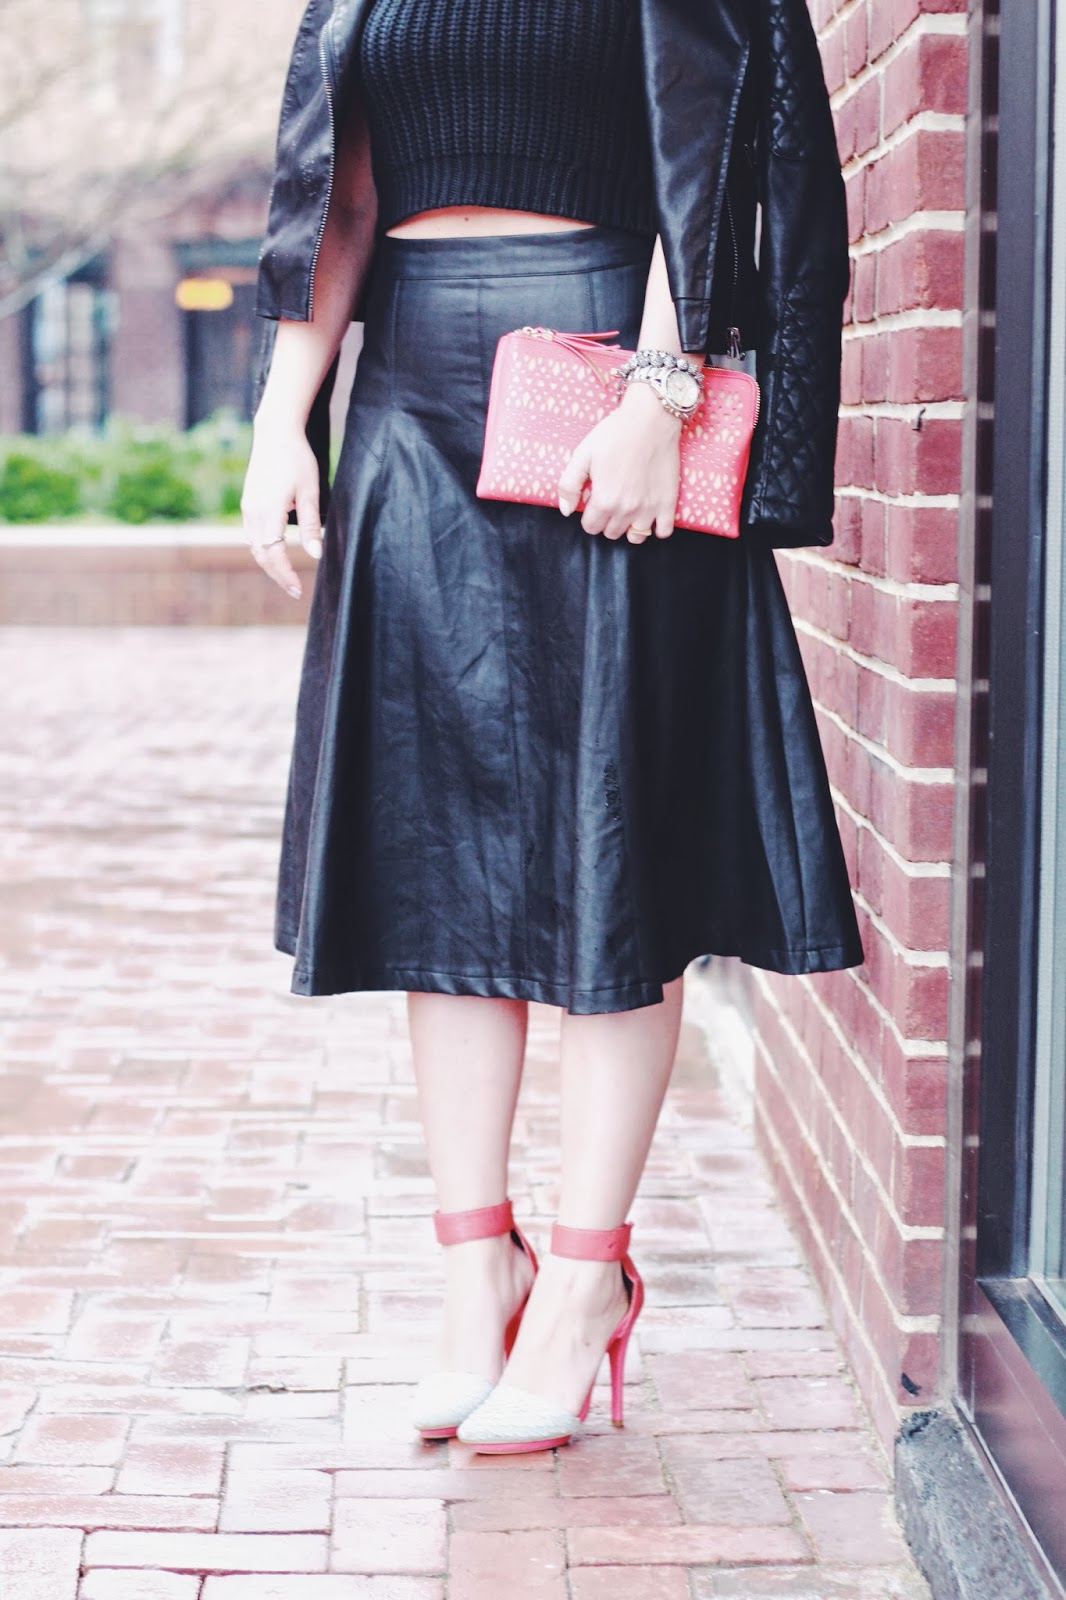 midi skirt, leather skirts, crop tops, fashion blogger, dc blog, fashion trends 2014, spring fashion